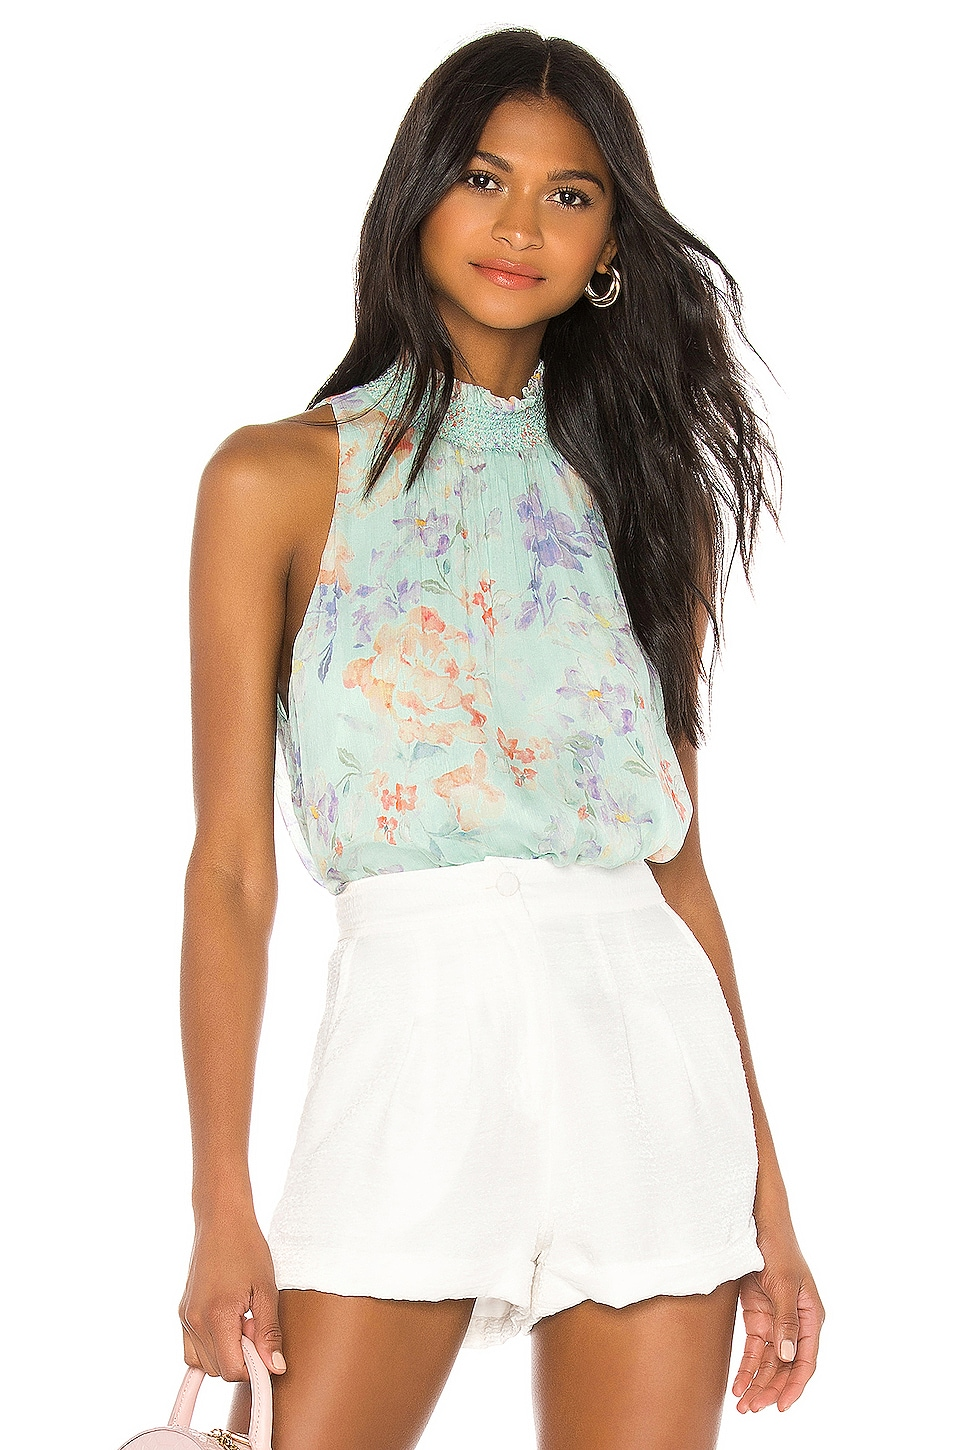 Alice + Olivia Annmarie Smocked Neck Tank in Water Petal Light Blue & Multi